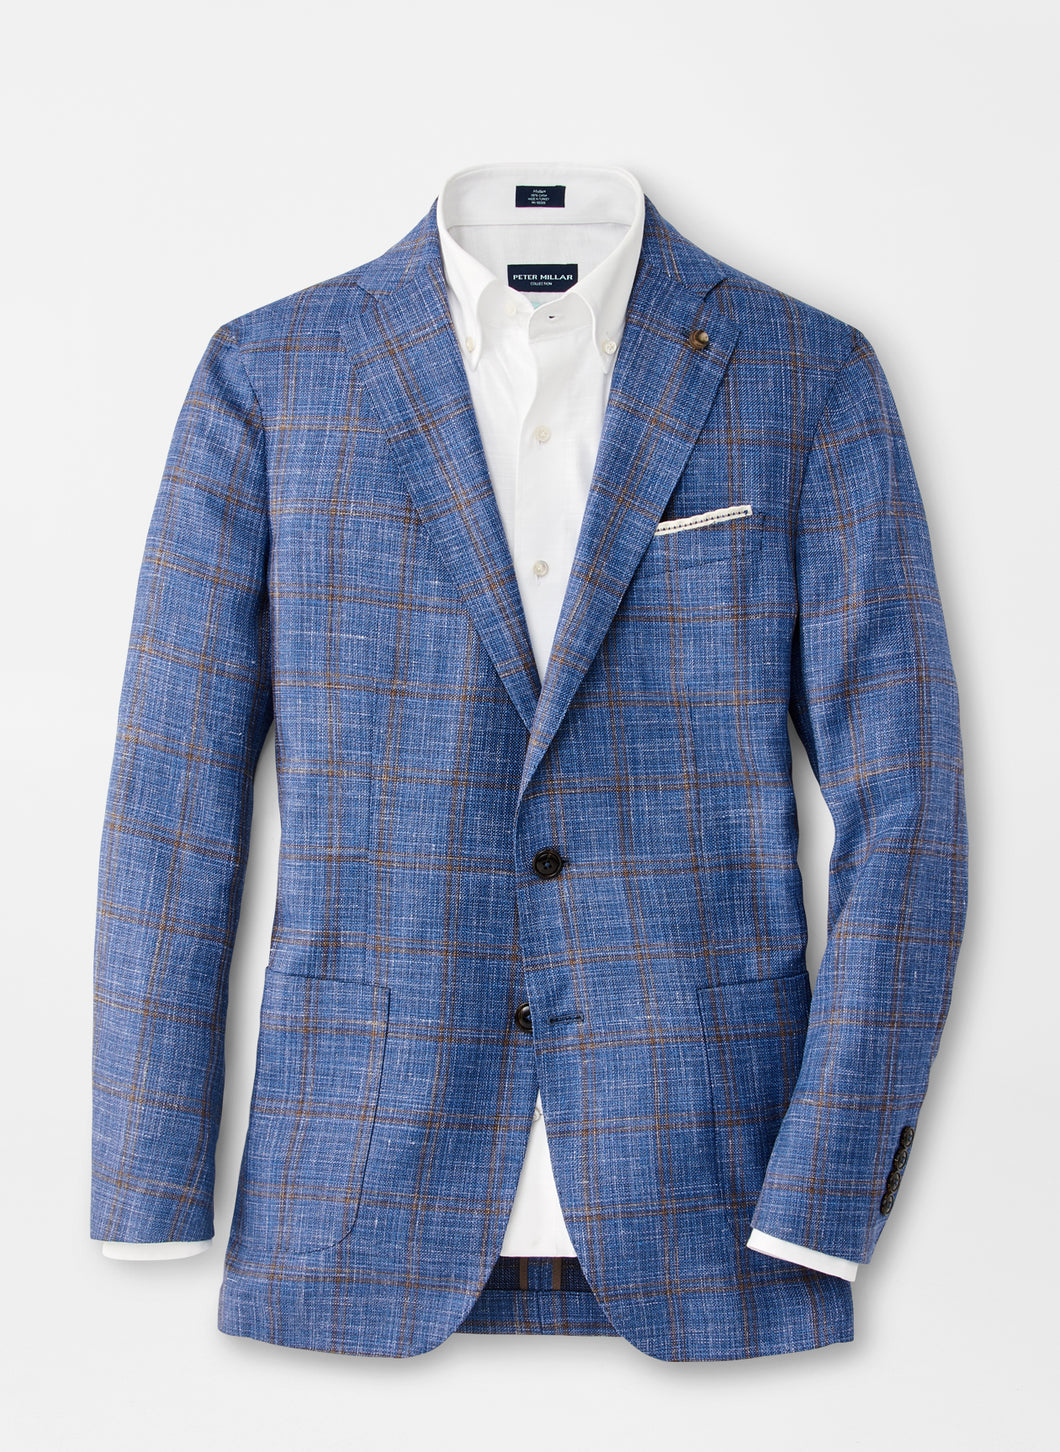 Peter Millar Rue Soft Jacket in Bleuet